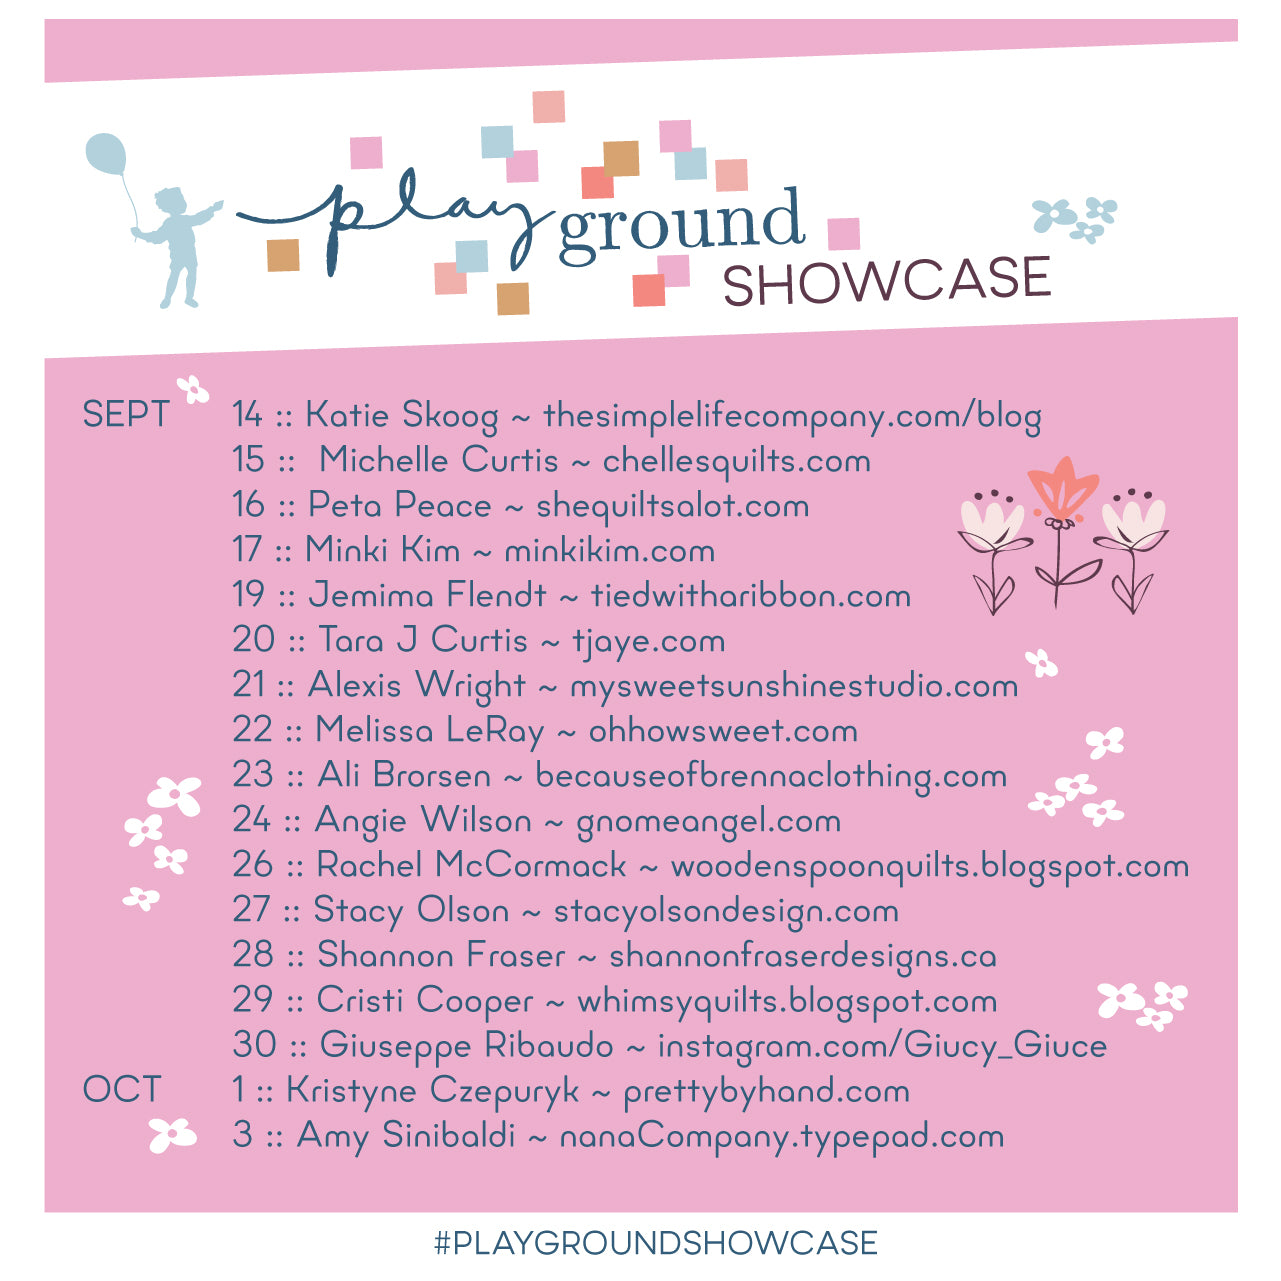 Playground Showcase Graphic with participants | Shannon Fraser Designs